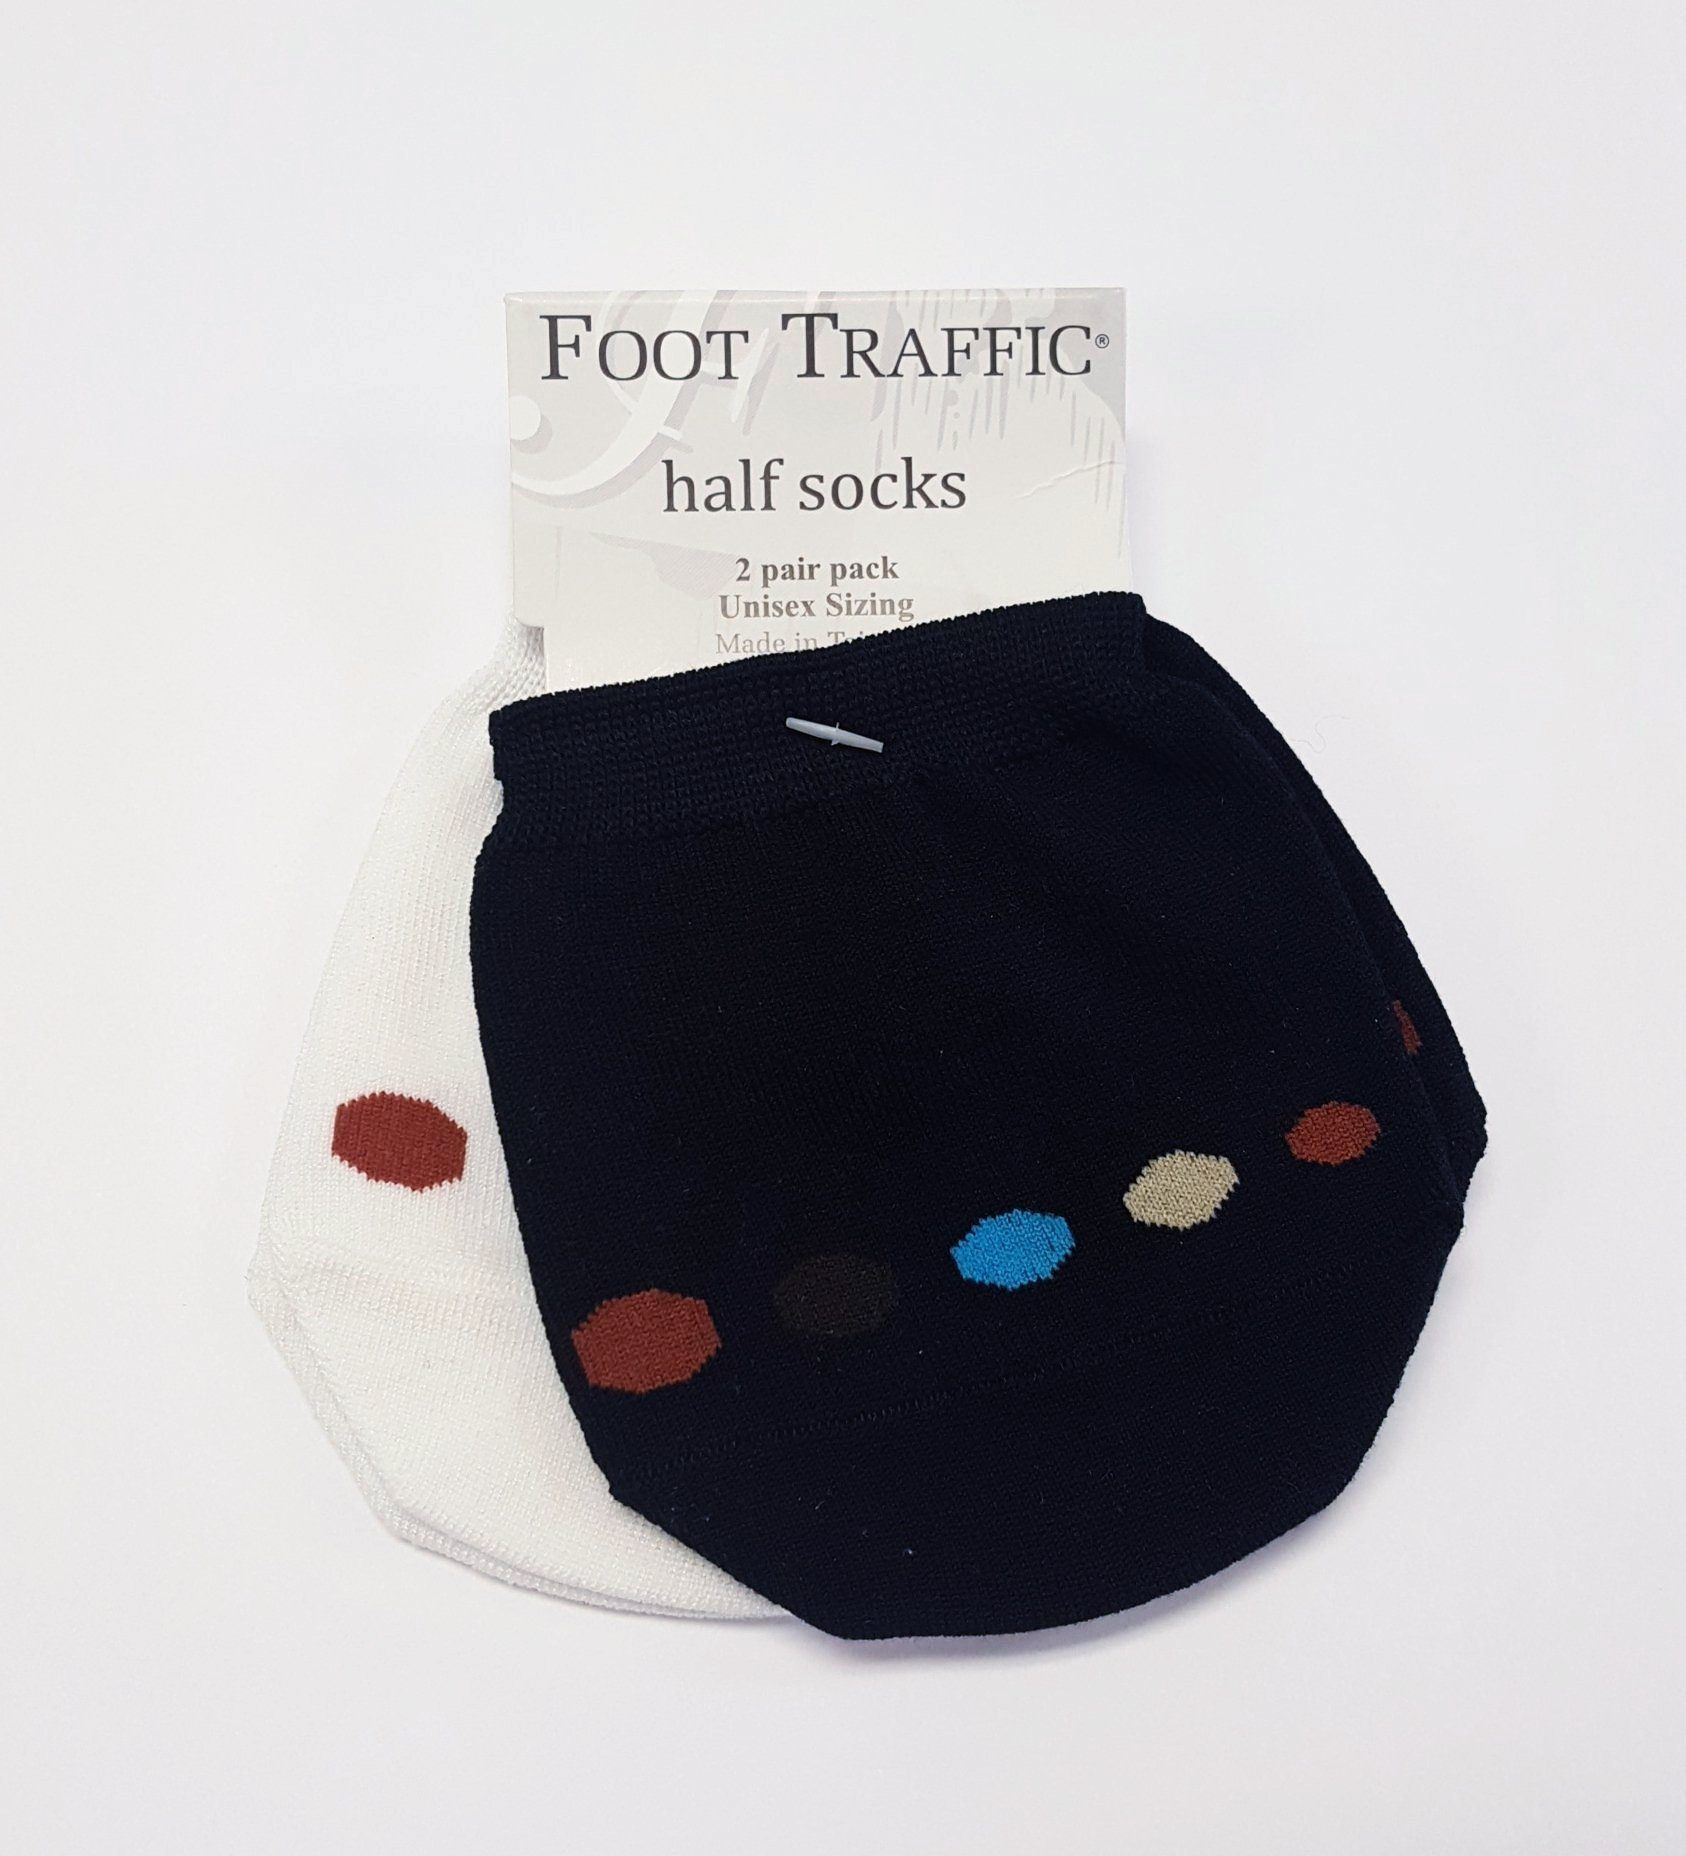 Foot Traffic - Cotton Half 2 Pack No Show Socks | Unisex - Knock Your Socks Off